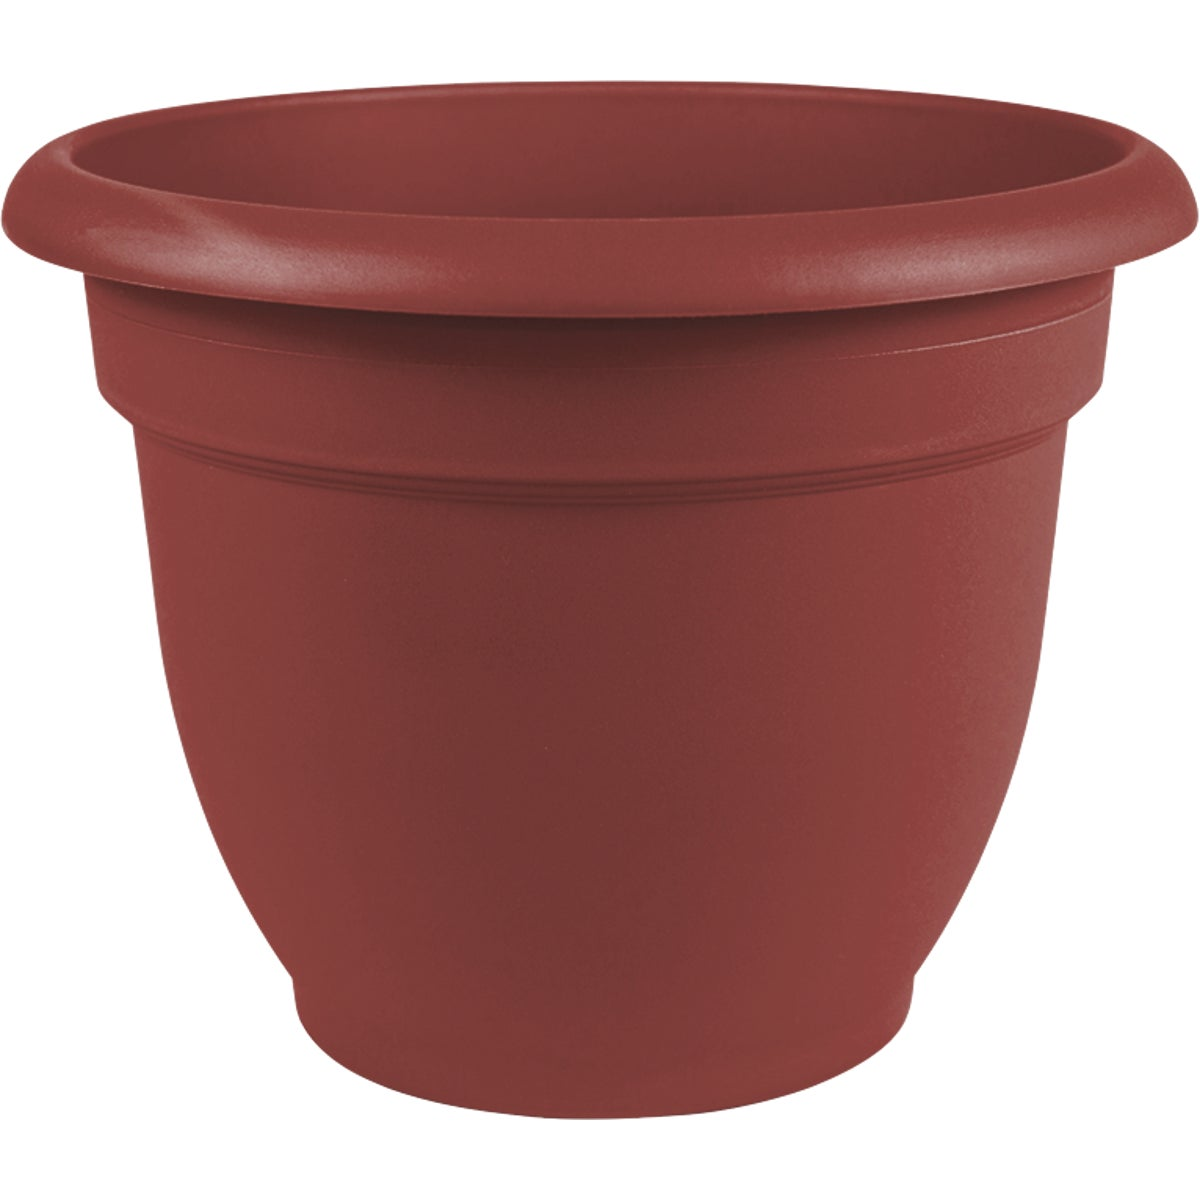 "8"" ORANGE ARIANA POT - 465082-1001 by Fiskars Brands Inc"